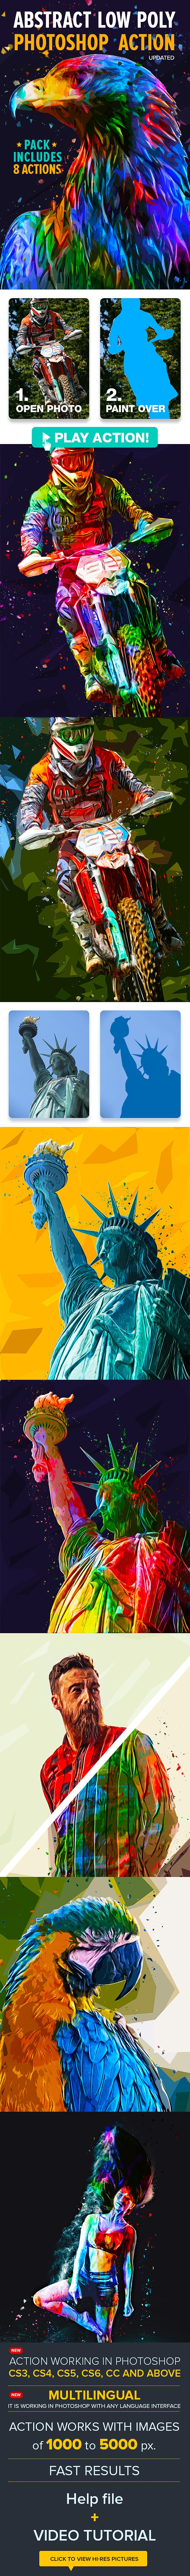 Abstract Low Poly Photoshop Action Pack - Photo Effects Actions